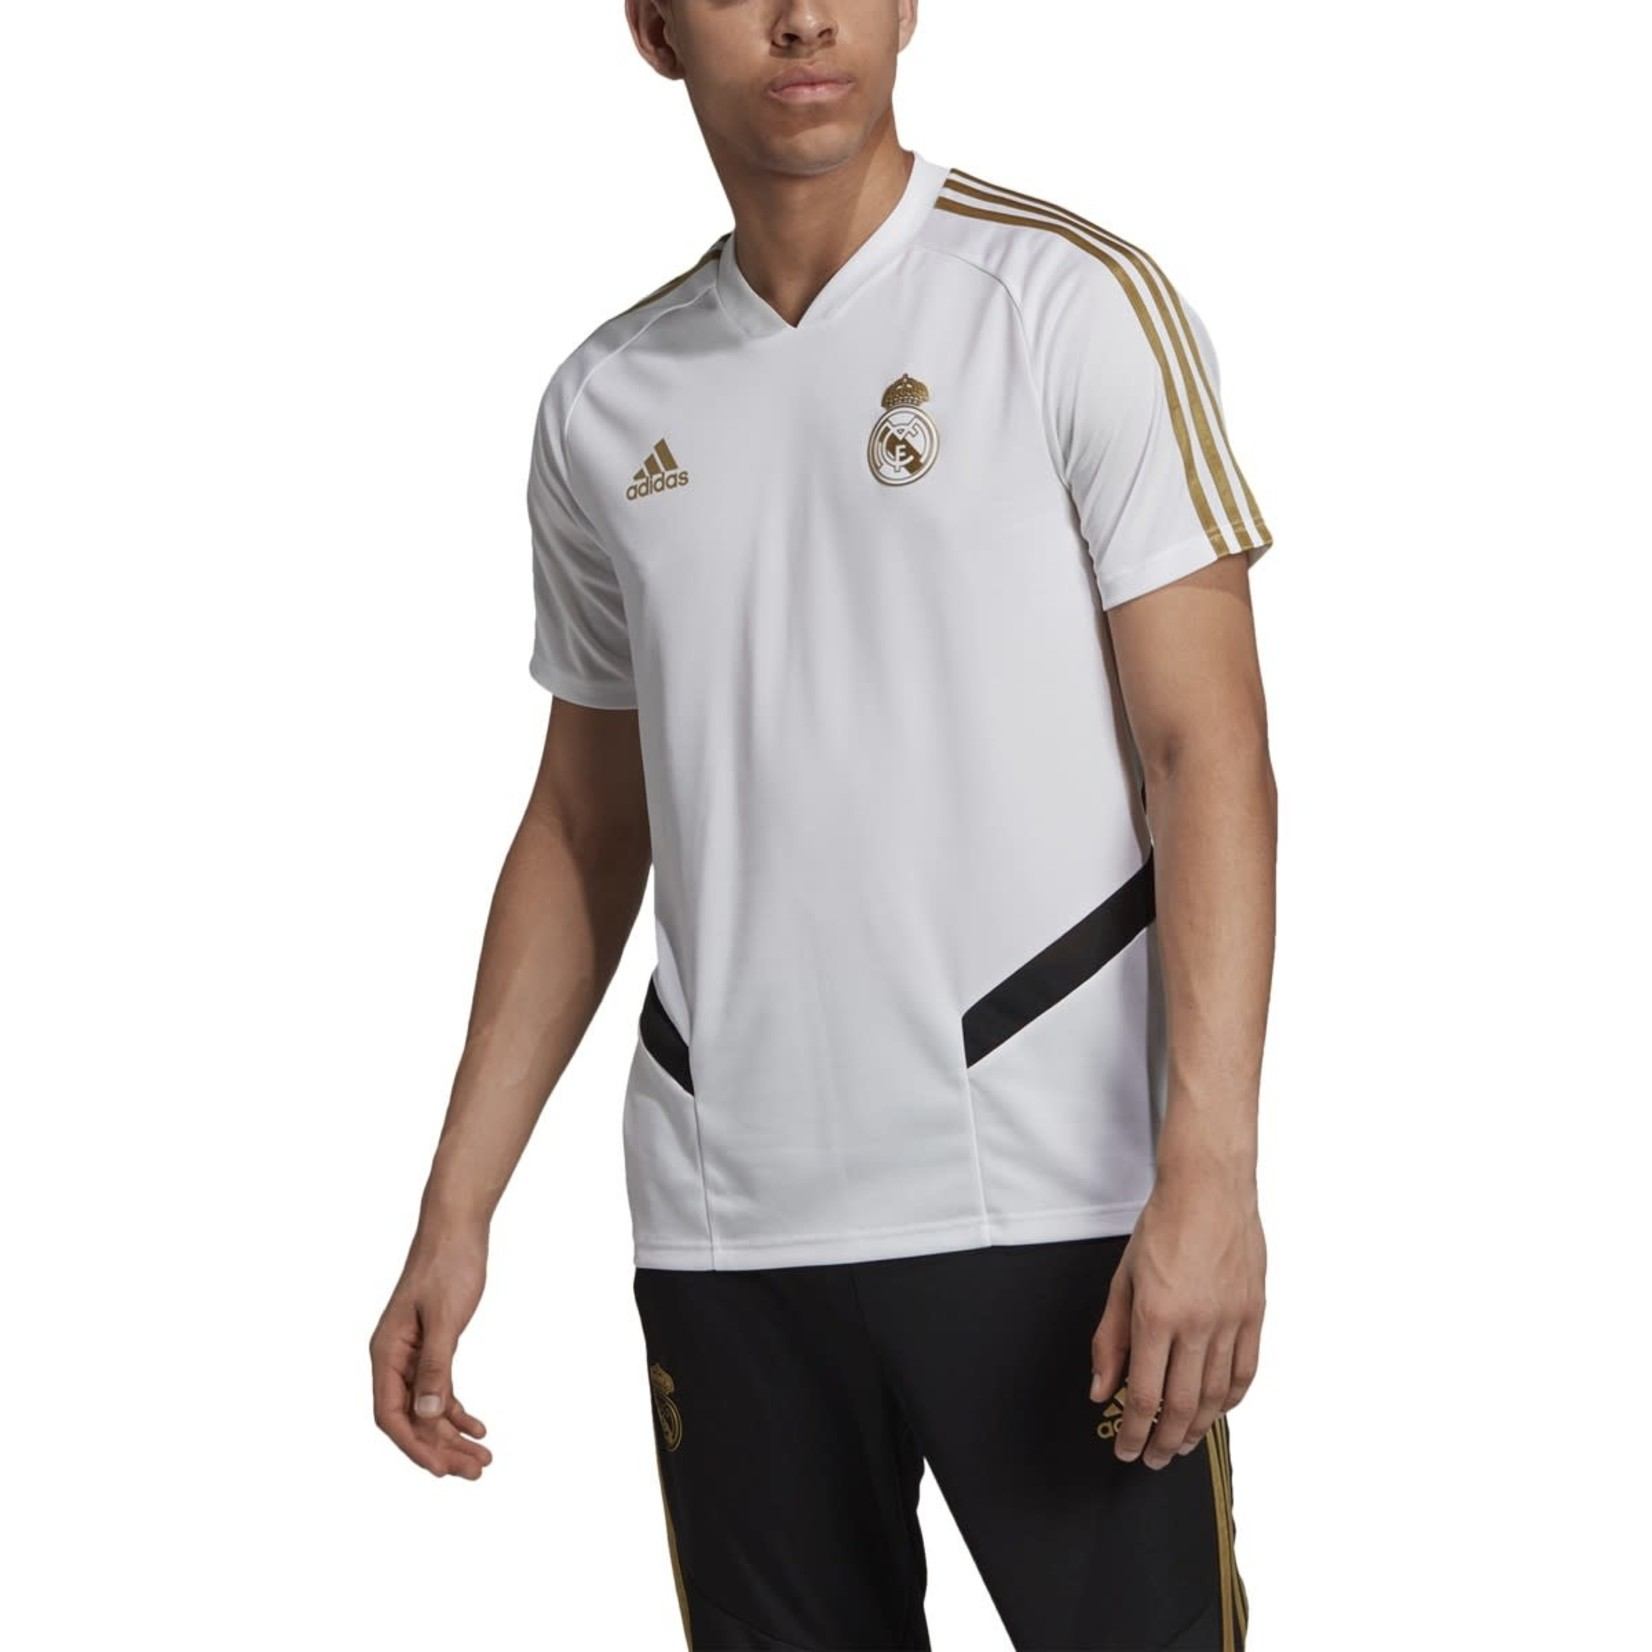 ADIDAS REAL MADRID 19/20 TRAINING JERSEY